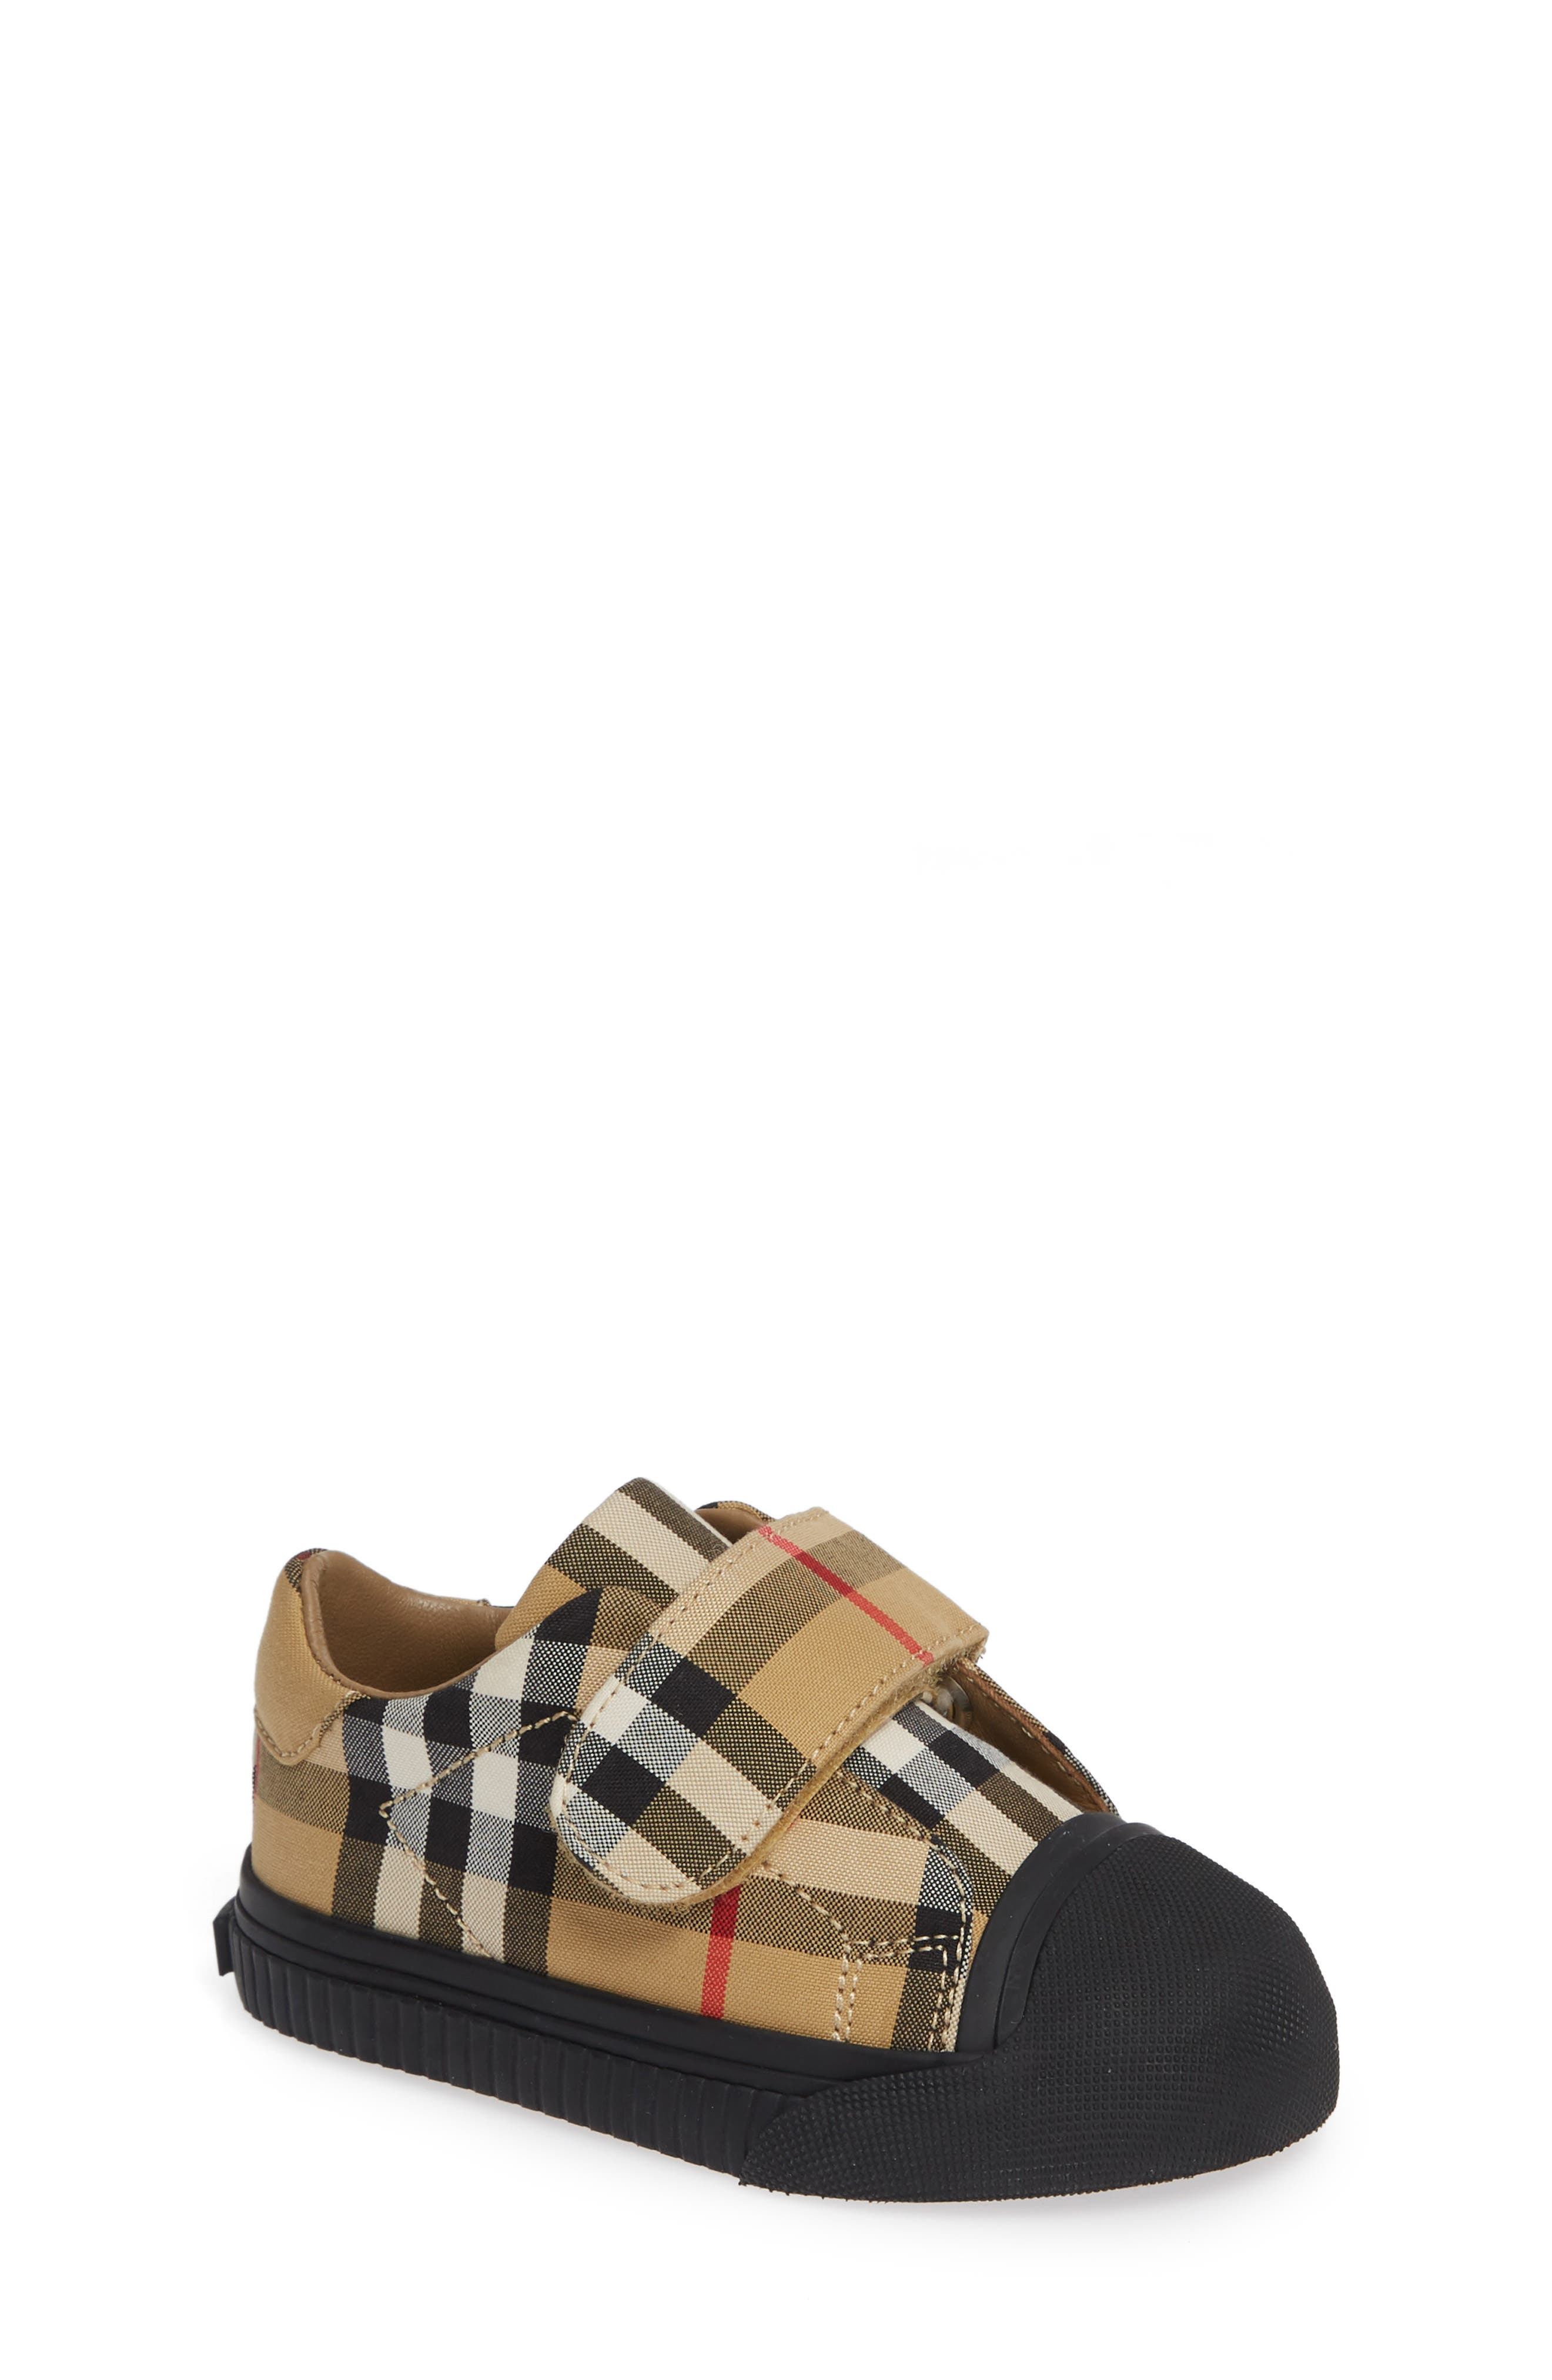 BURBERRY Beech Check Sneaker, Main, color, ANTIQUE YELLOW/ BLACK